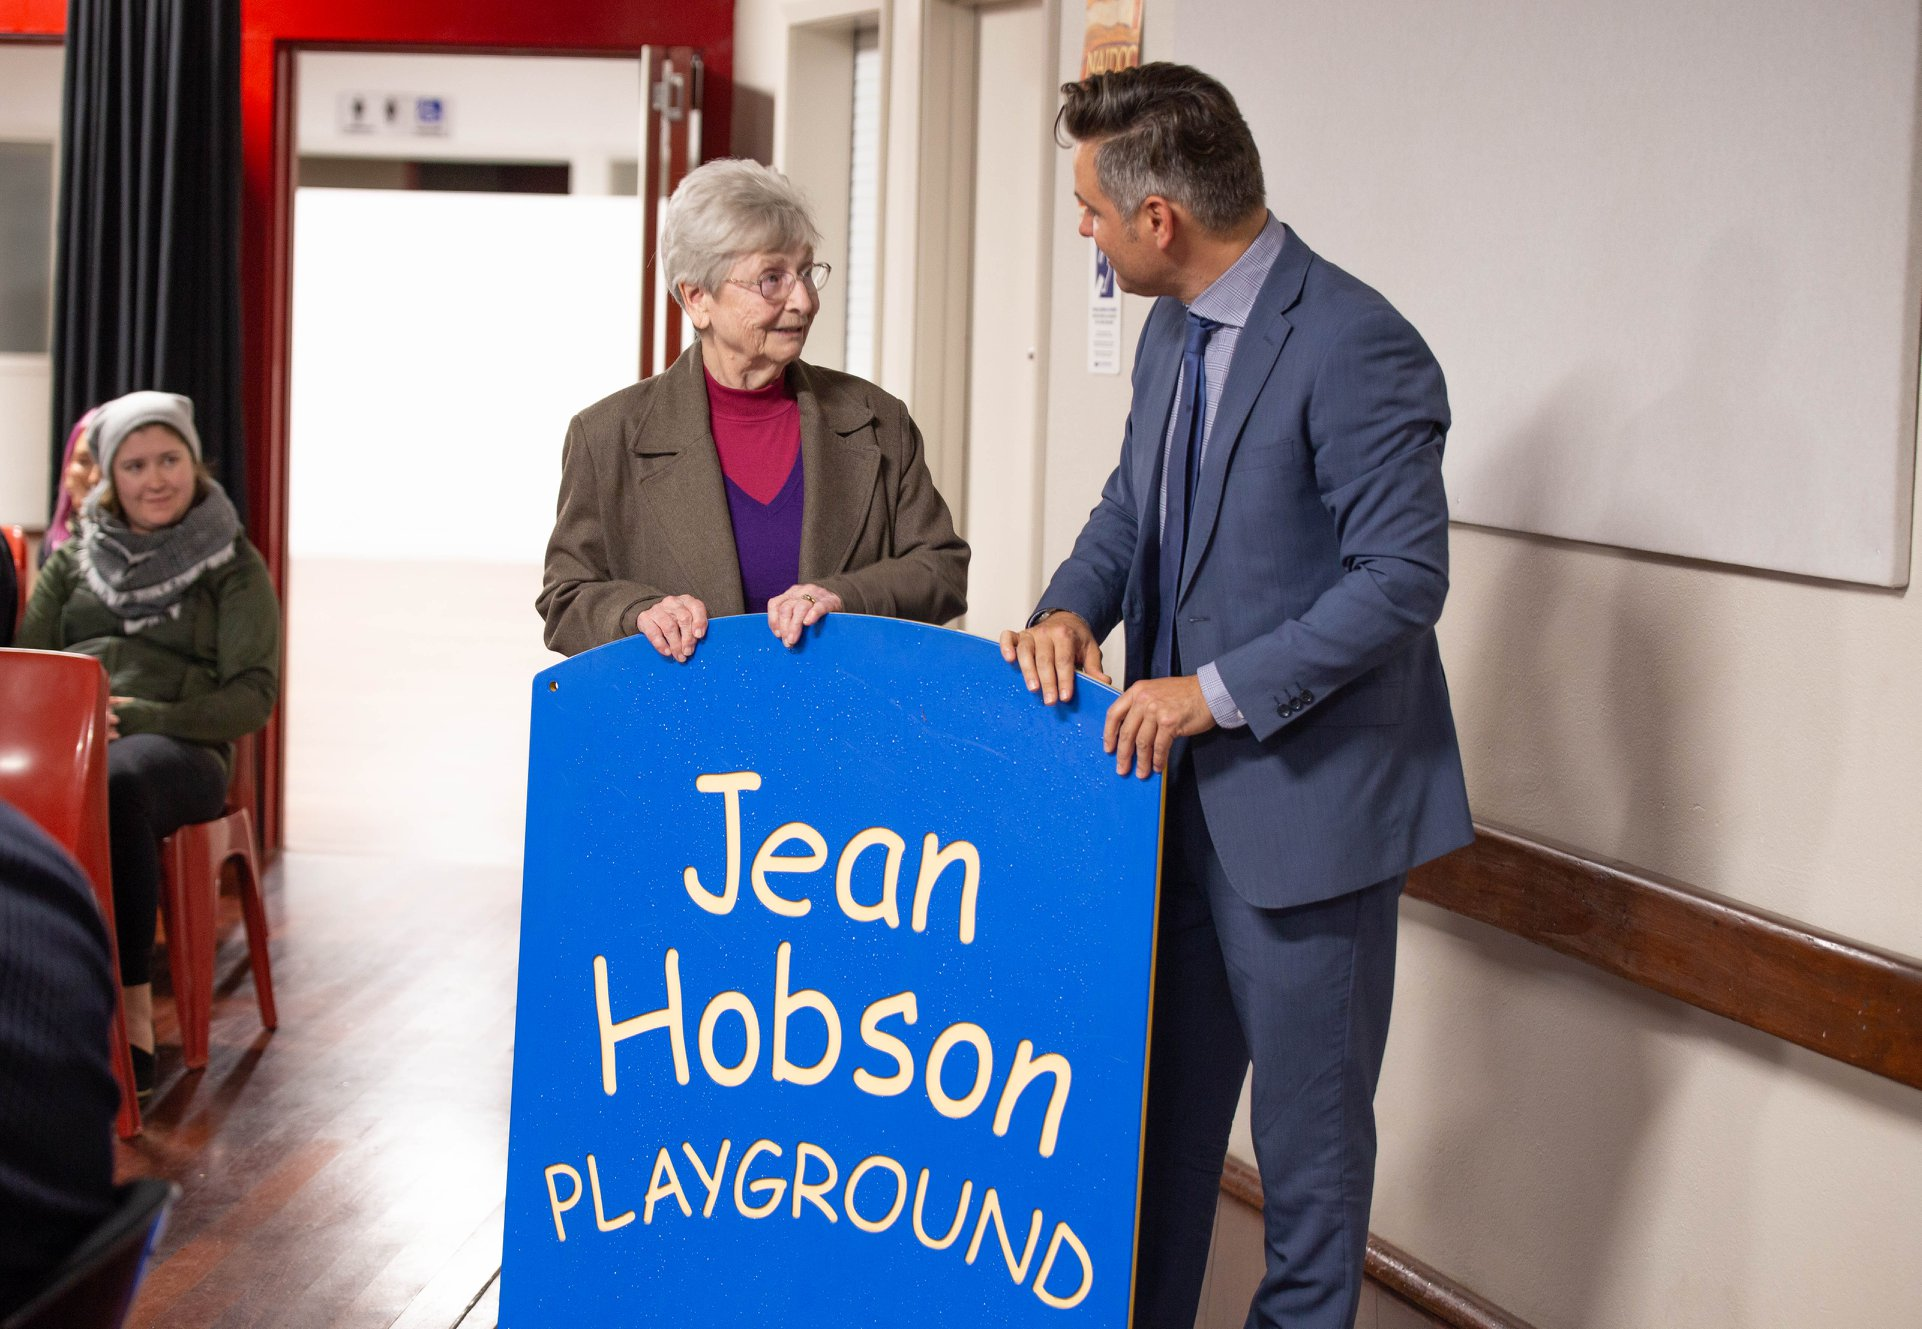 Jean Hobson and Mayor Pettitt standing behind the Jean Hobson playground sign